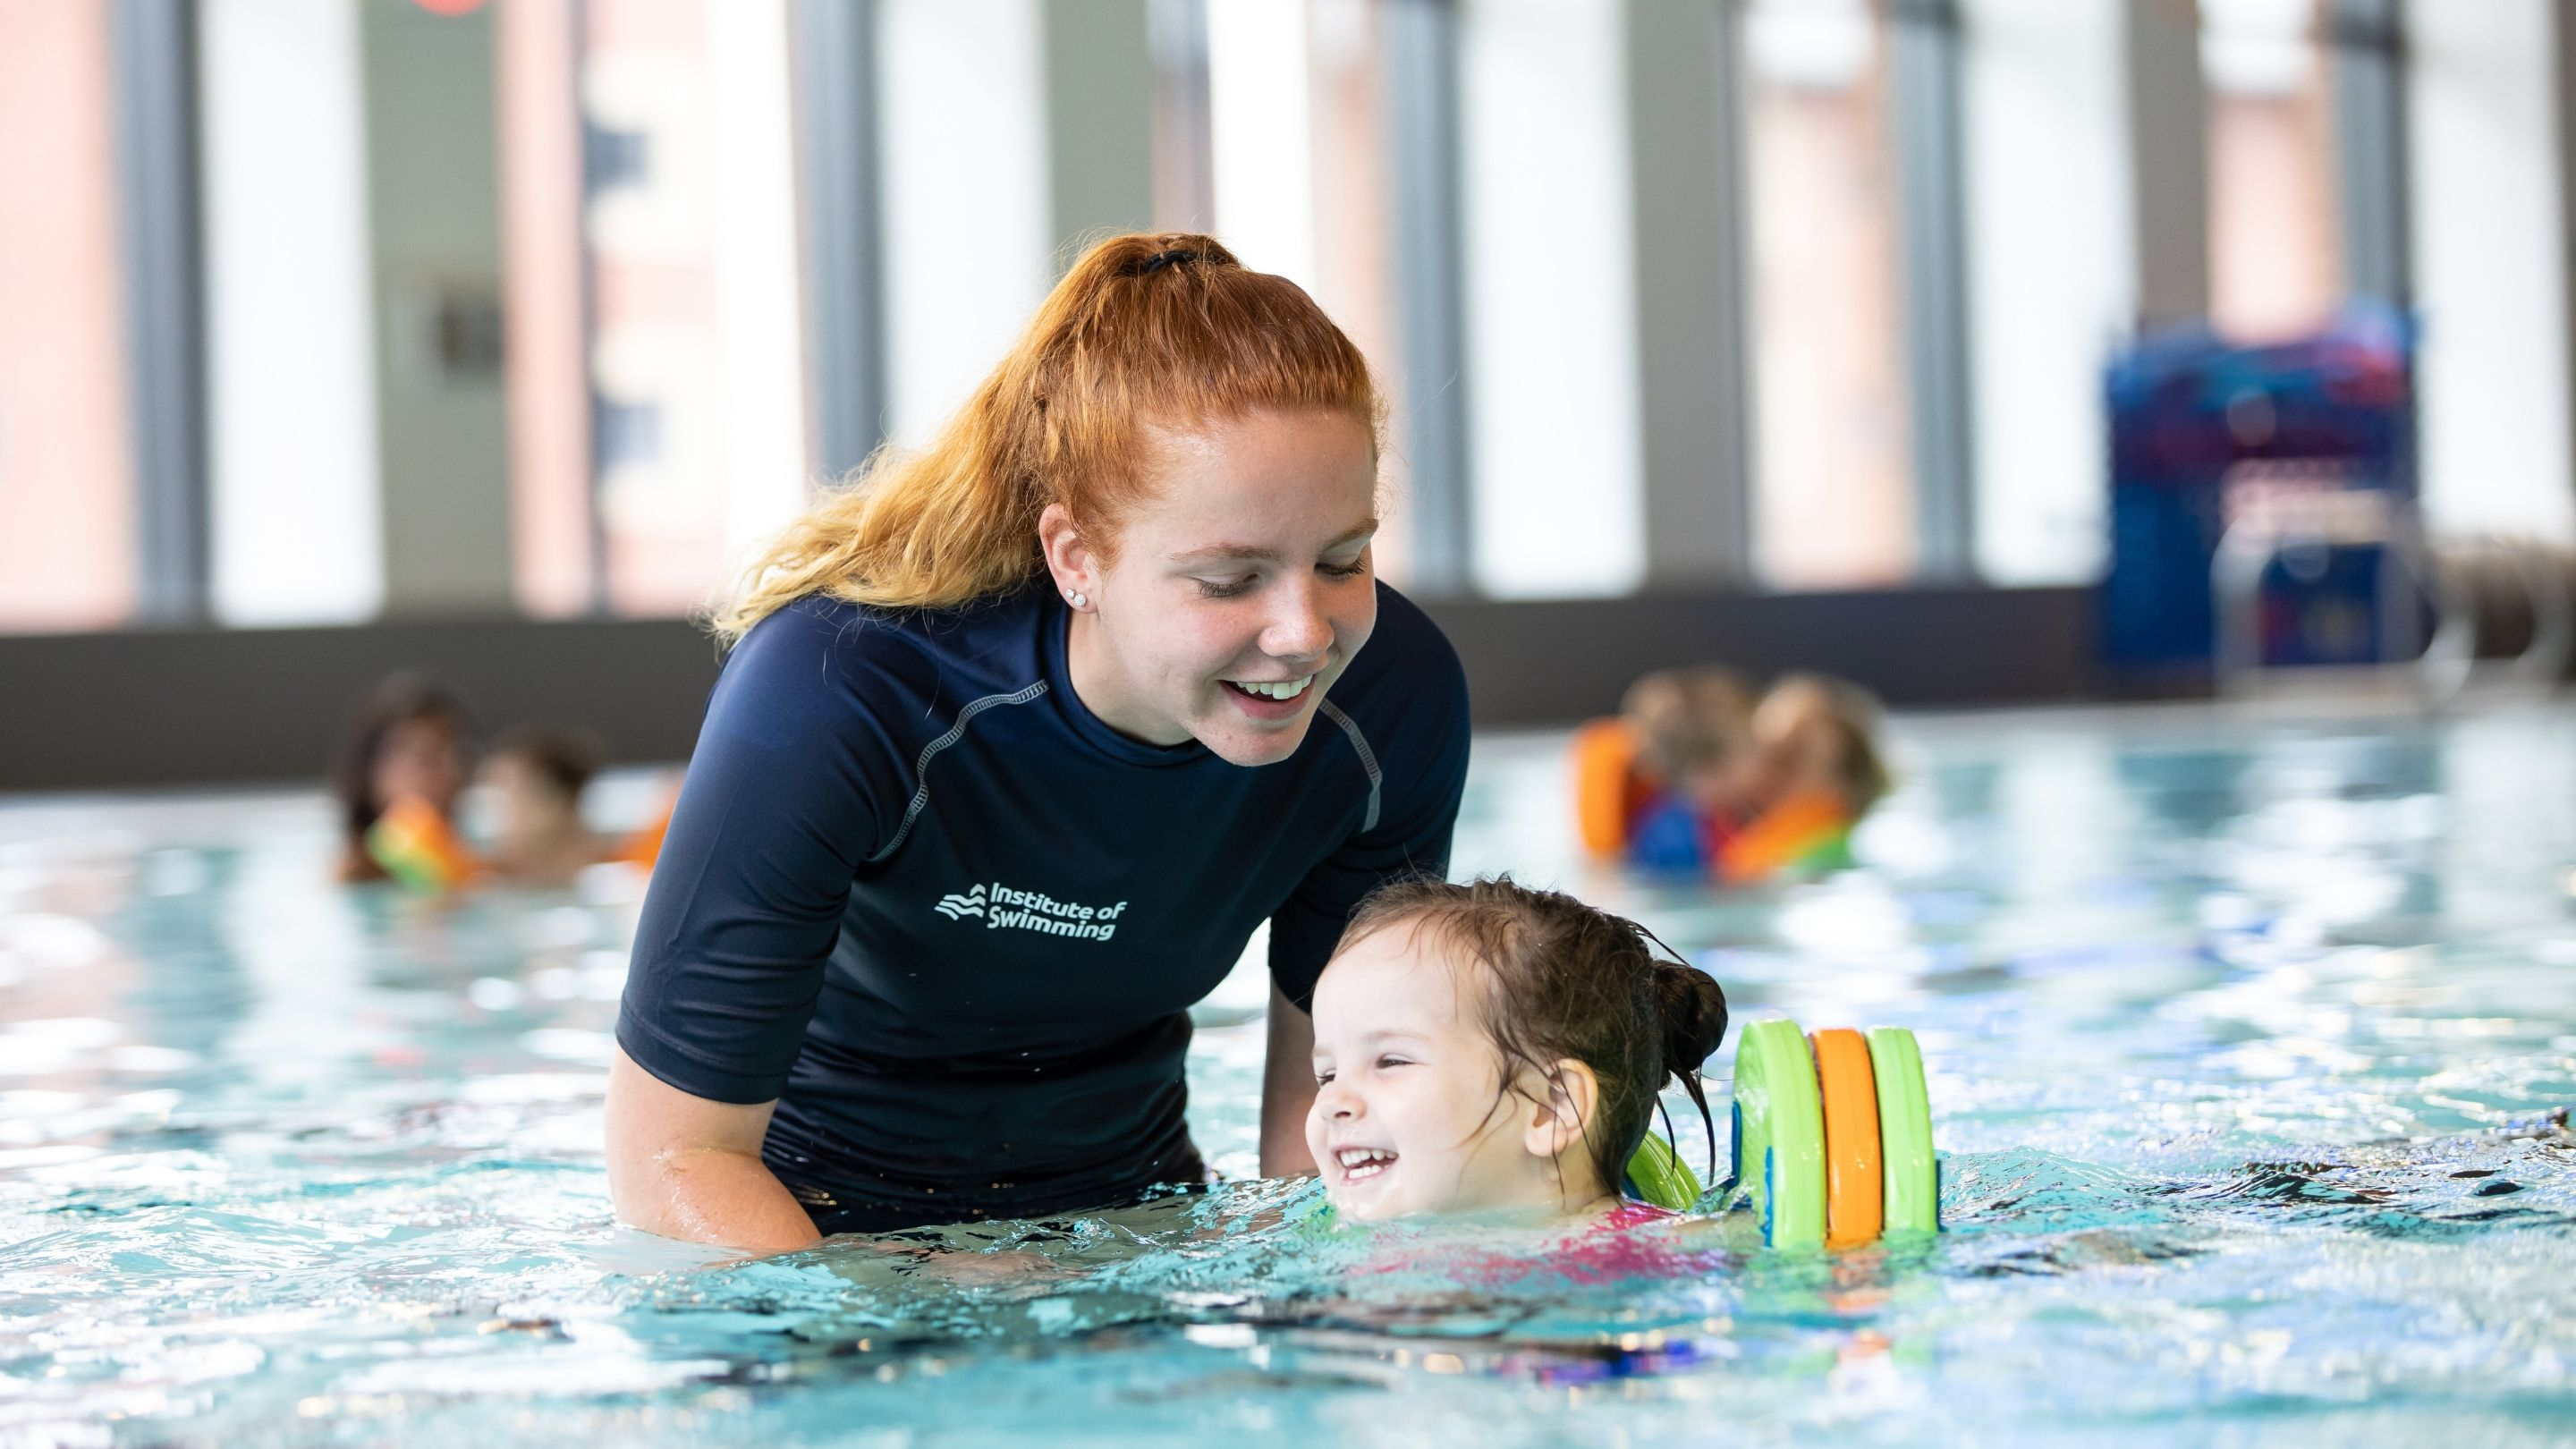 First qualification endorsed by CIMSPA assistant swimming teacher standard